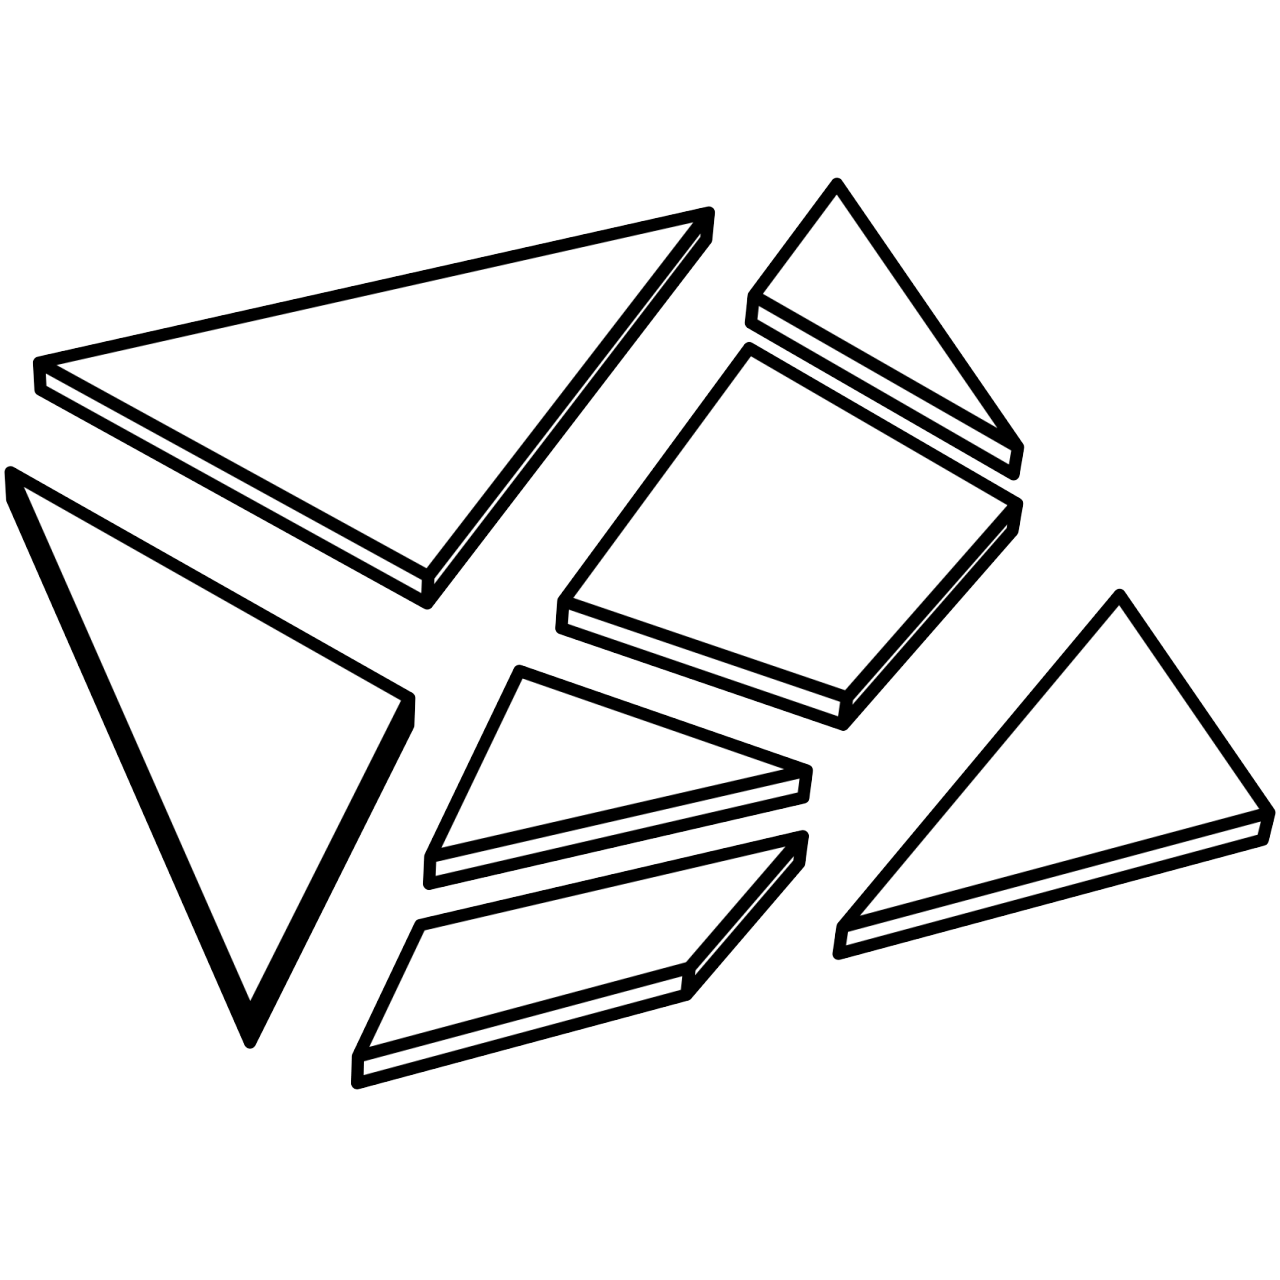 Drawing javascript triangle. Edges of a mesh